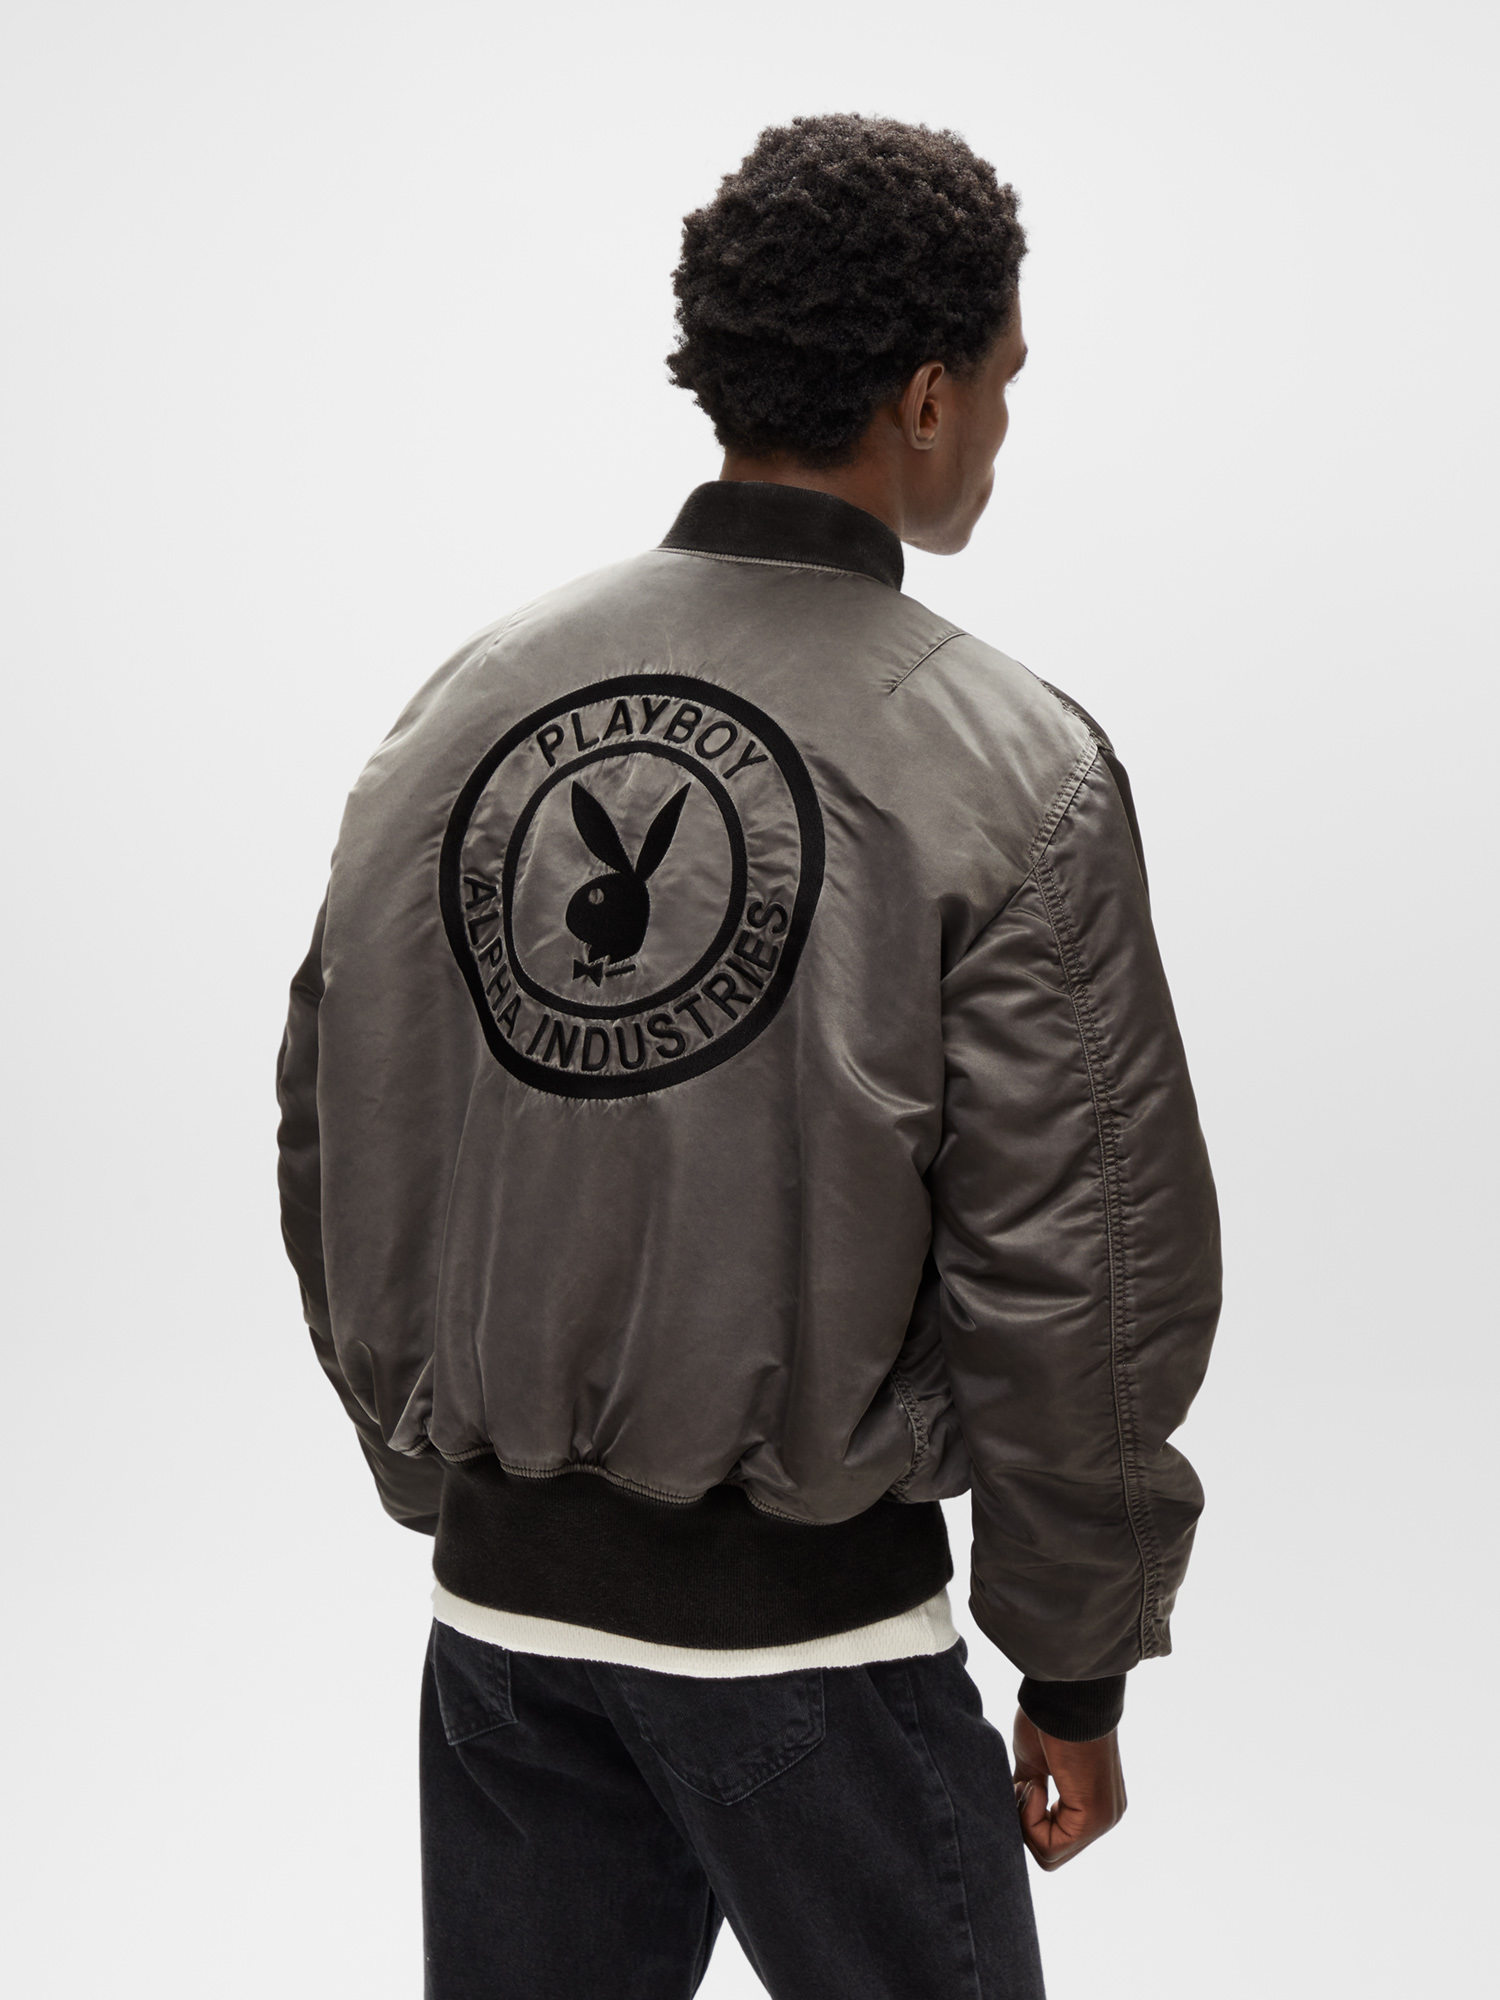 Alpha Industries x Playboy